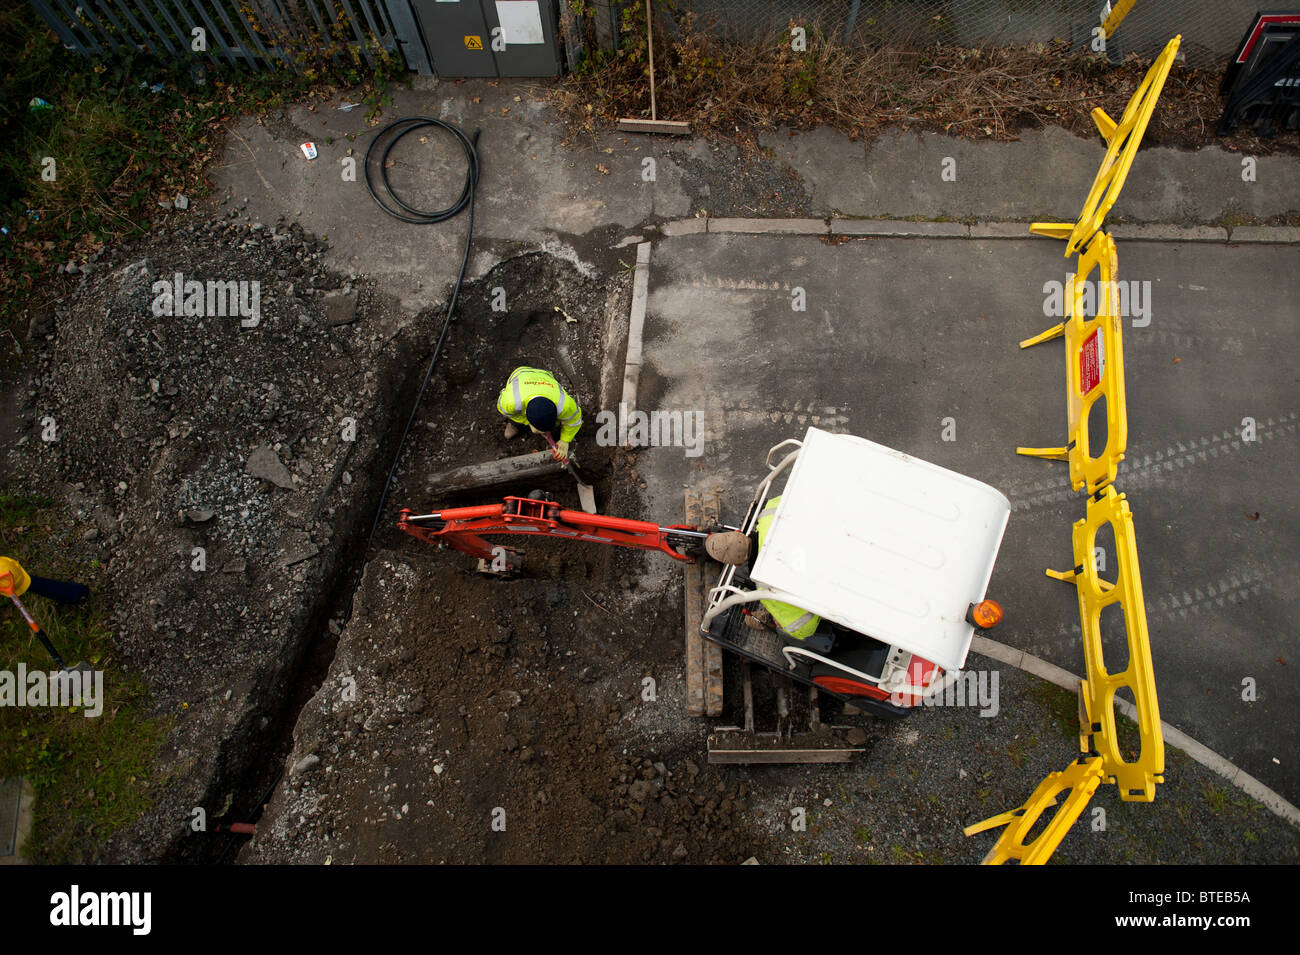 Mini excavator digging a trench , viewed from above,  UK - Stock Image